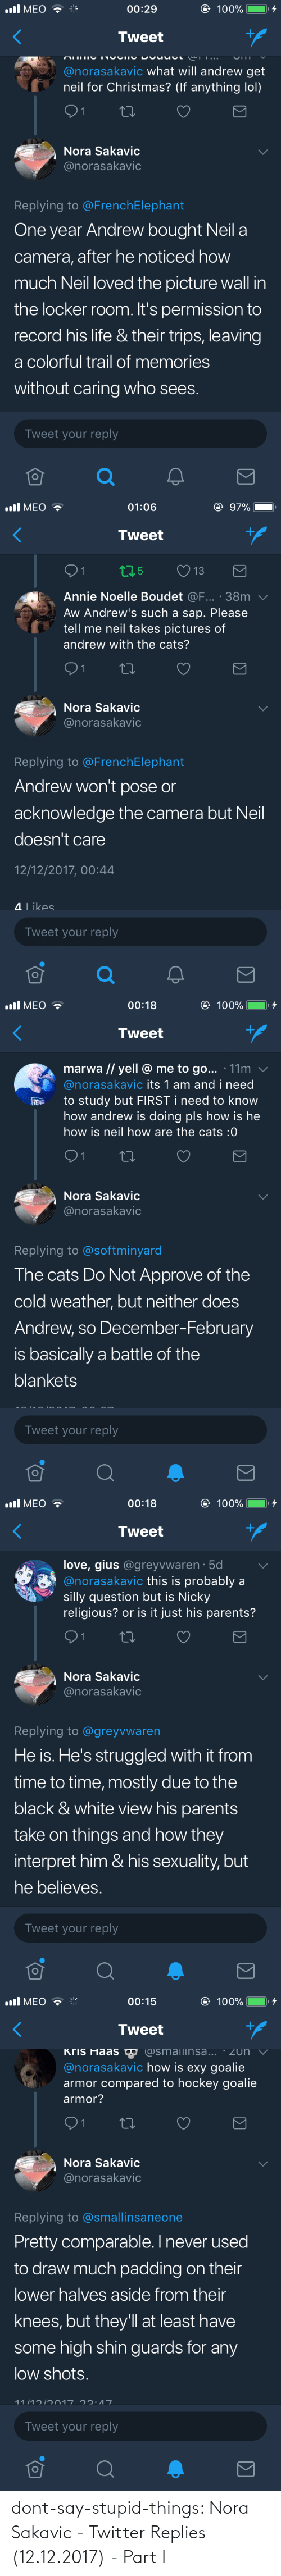 things: dont-say-stupid-things:  Nora Sakavic - Twitter Replies (12.12.2017) - Part I